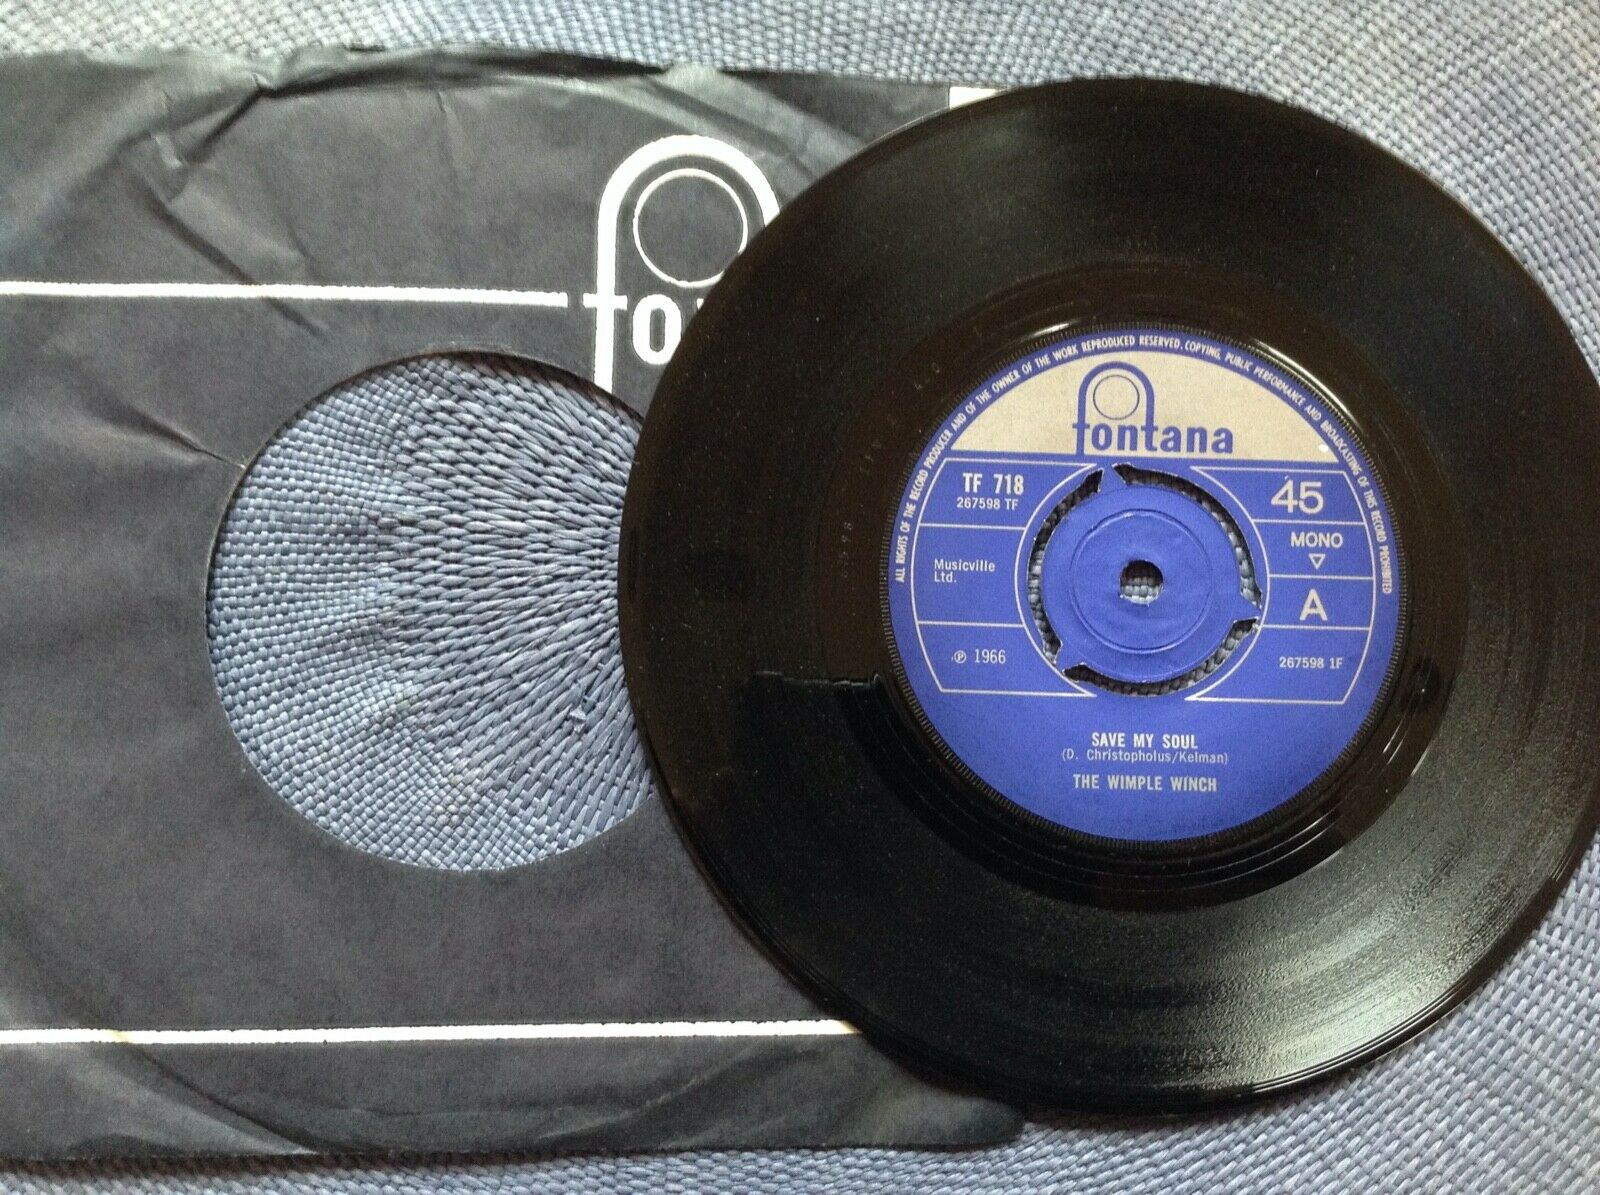 THE WIMPLE WINCH - SAVE MY SOUL rare UK 1966 PSYCH FREAKBEAT MOD UNPLAYED MINT-